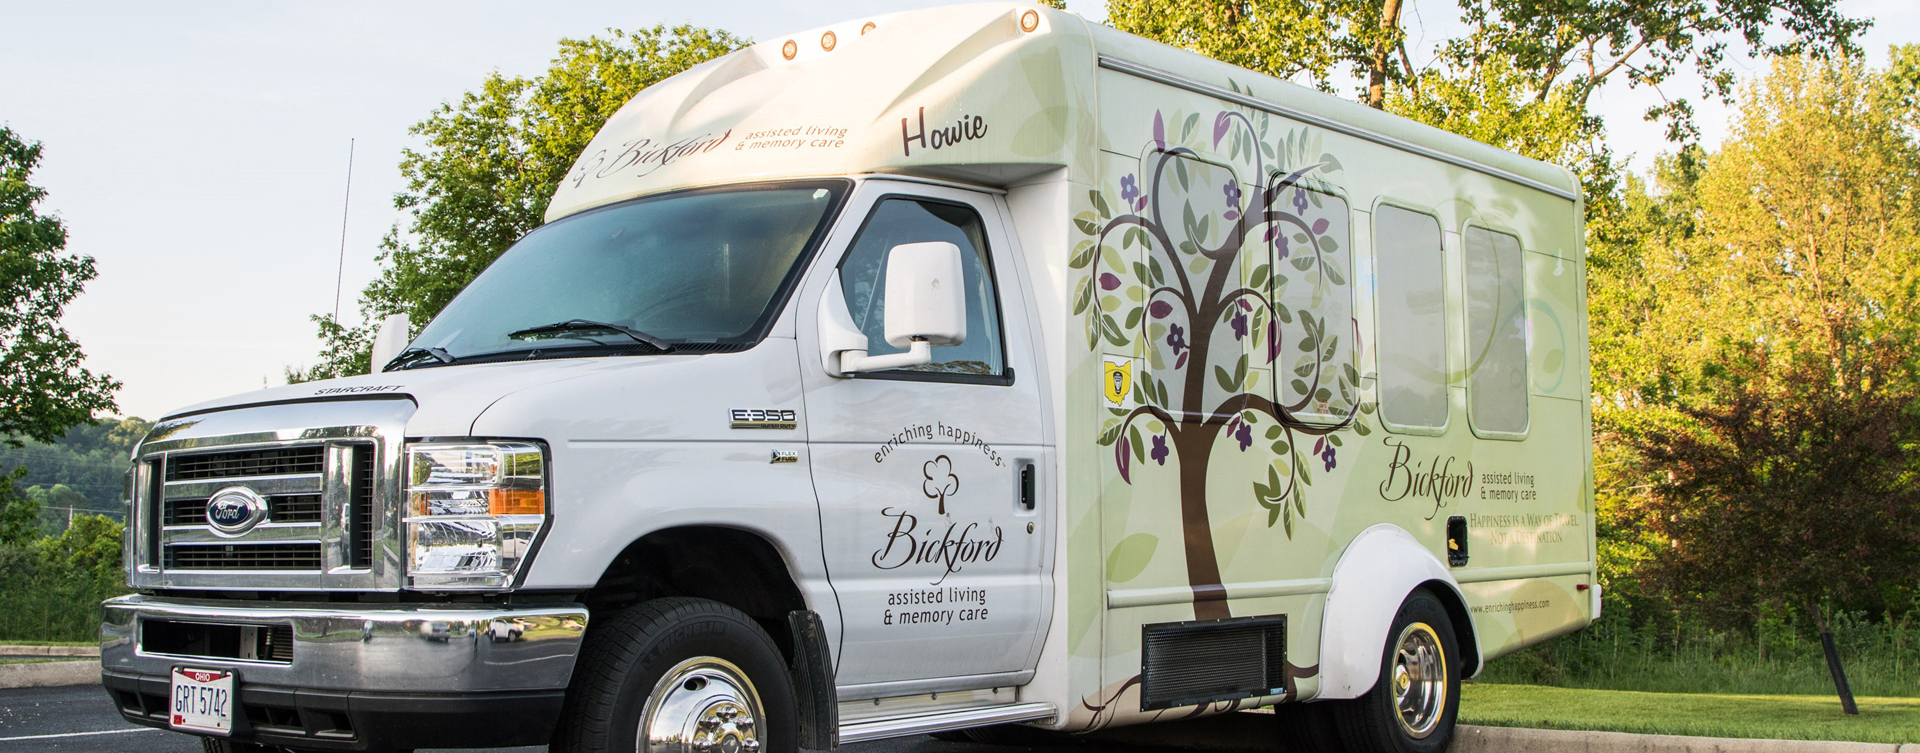 Participate in community outings aboard the Bickford bus HOWIE at Bickford of Muscatine